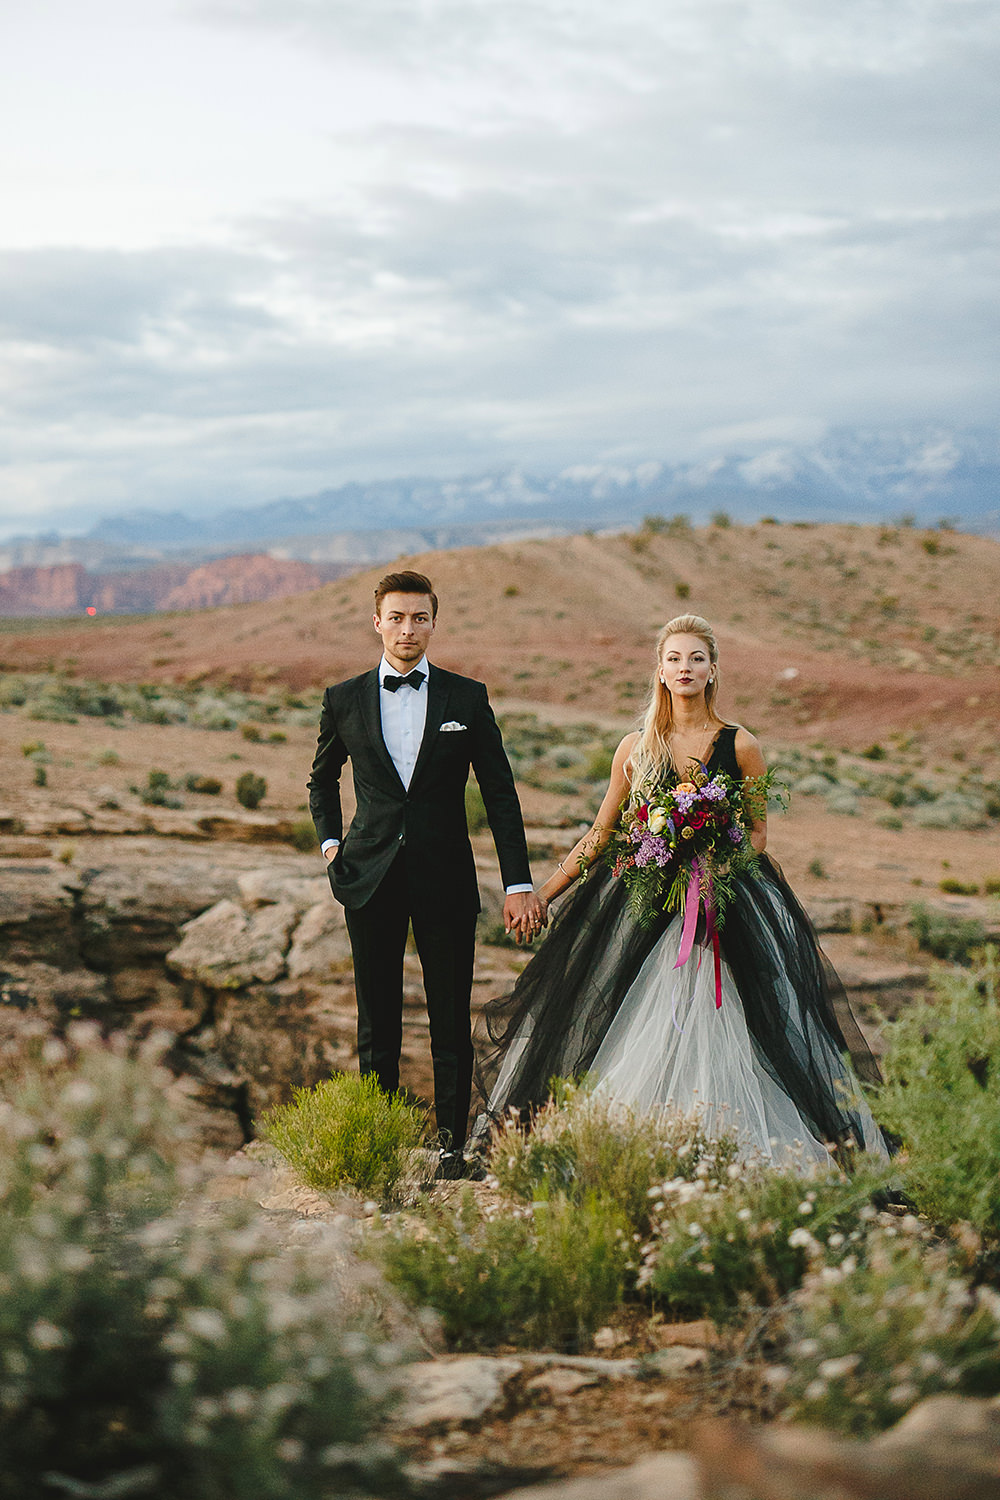 desert weddings - https://ruffledblog.com/bejeweled-wedding-inspiration-with-a-black-and-white-gown